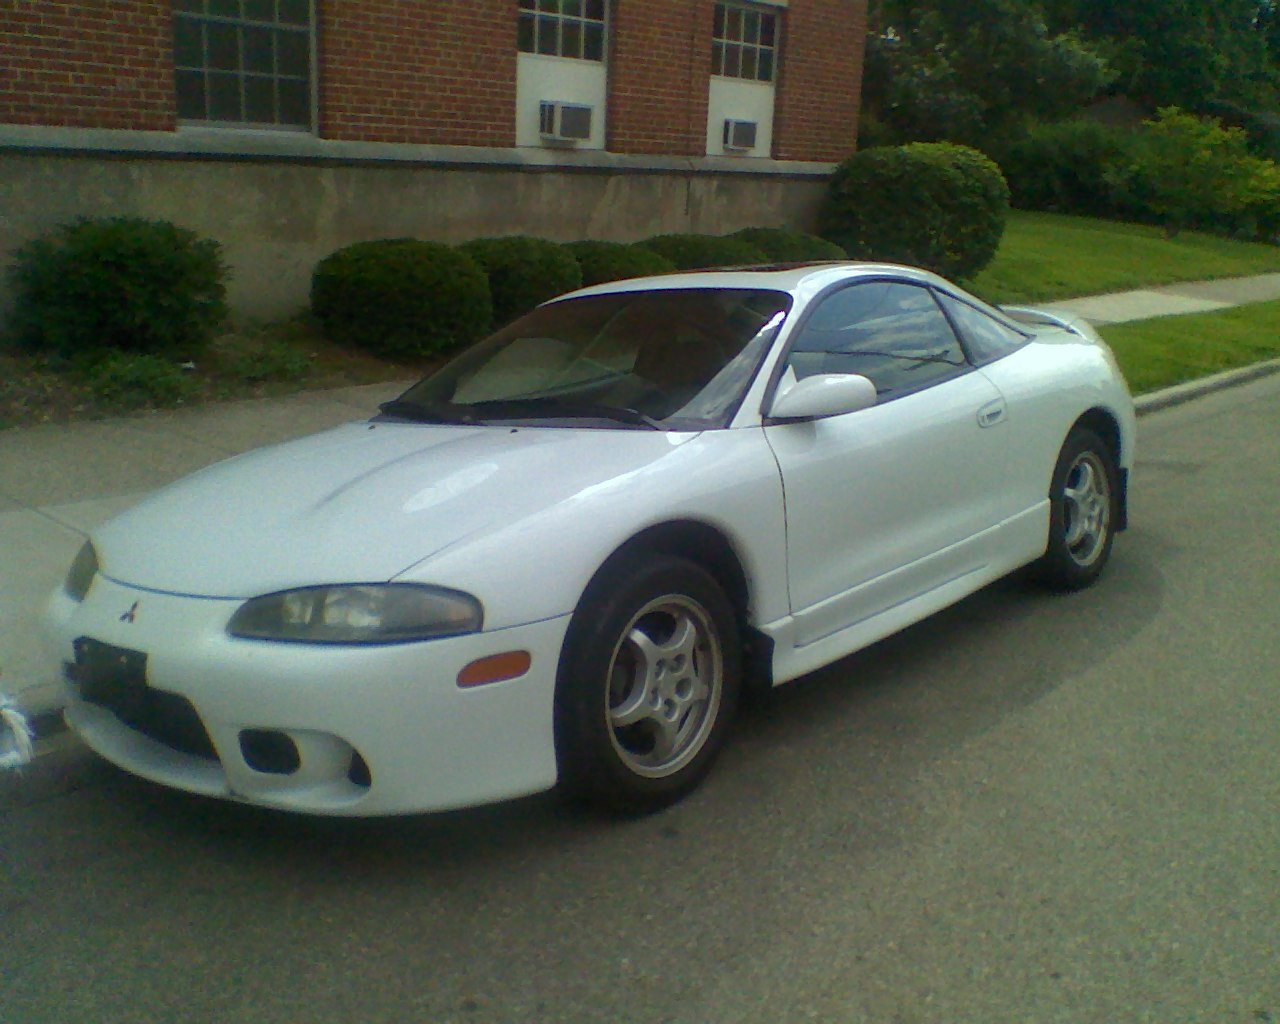 razorace 39 s 1999 mitsubishi eclipse in franklin oh. Black Bedroom Furniture Sets. Home Design Ideas